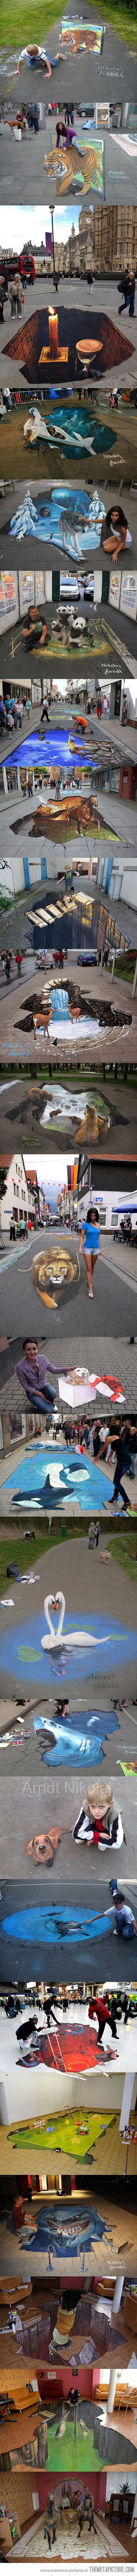 cool-street-art-paint-road-walkpass